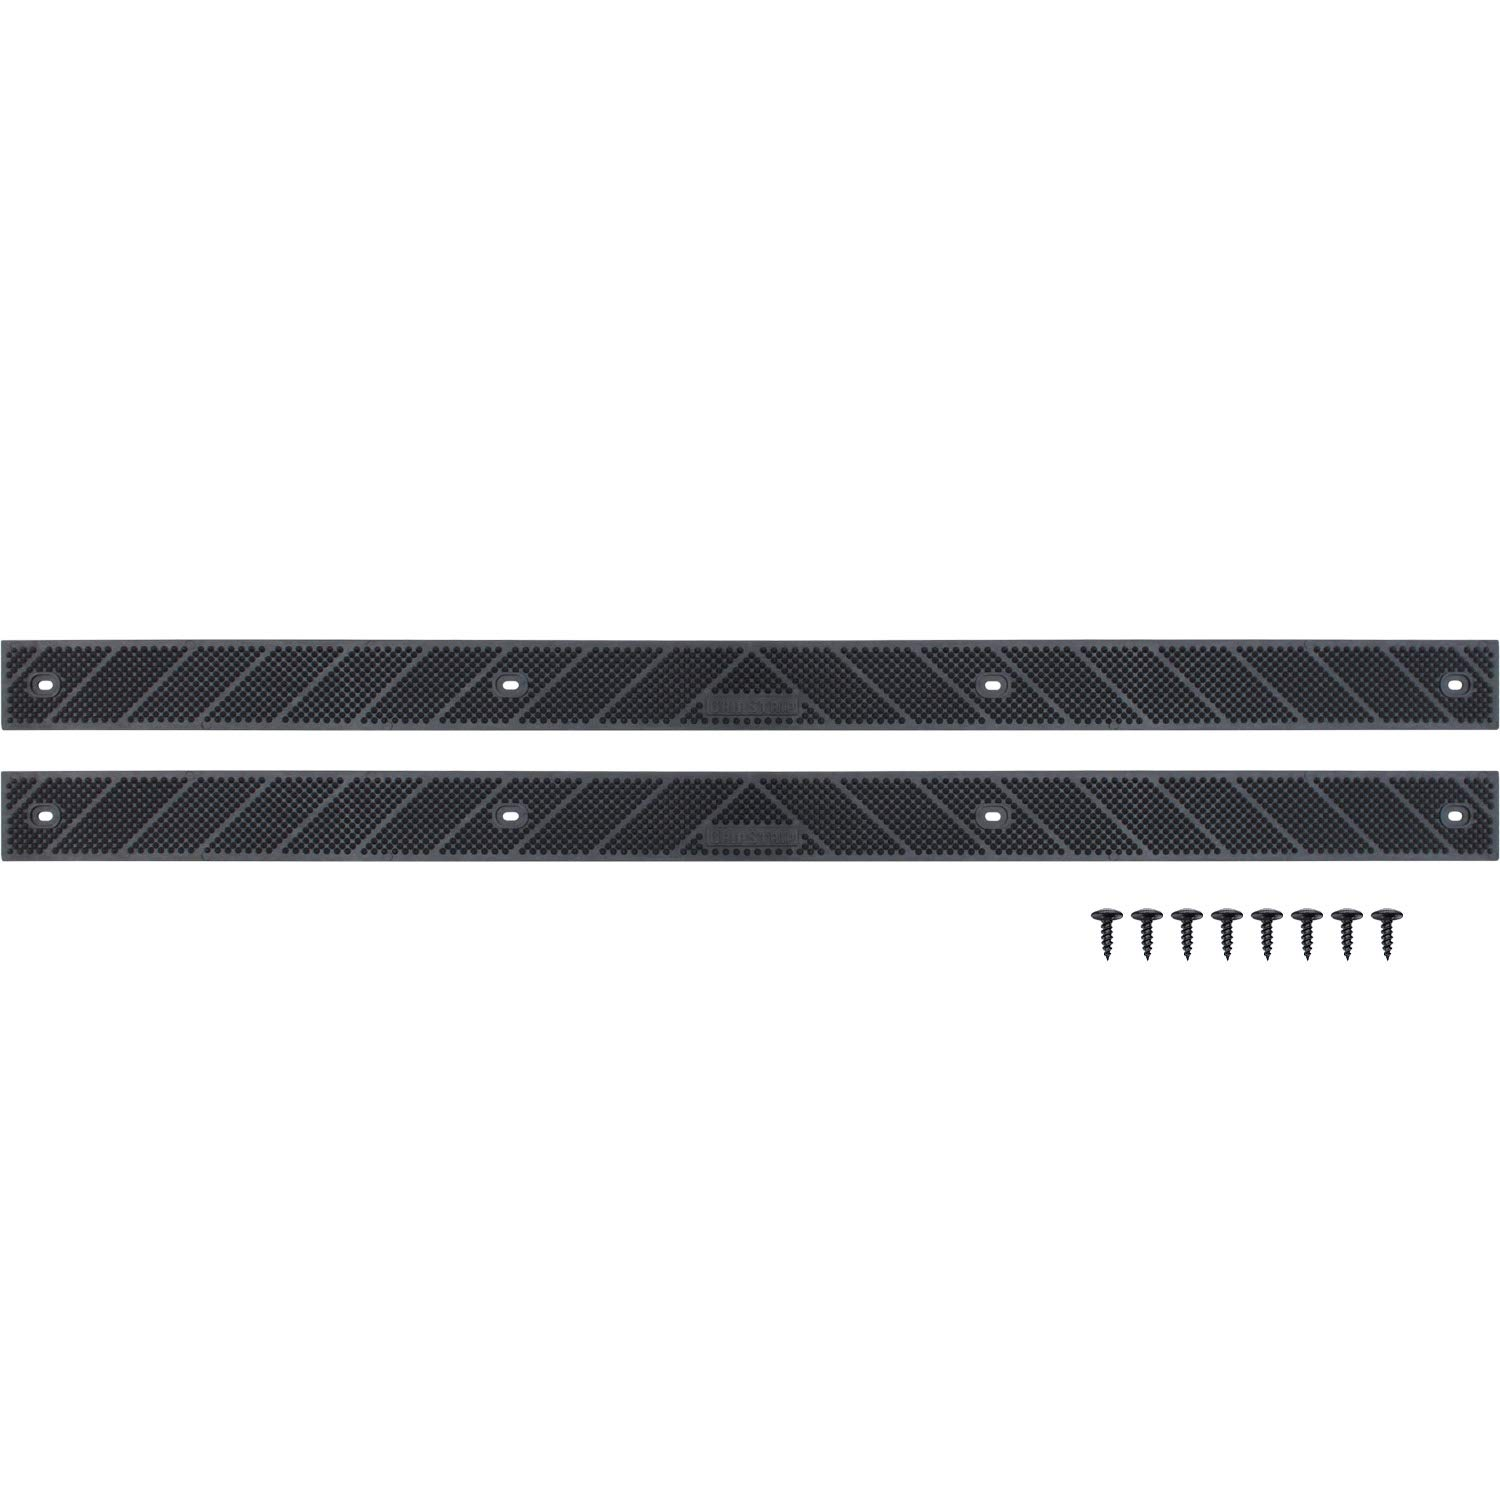 New Grip Strip No Adhesive Tread Tape Anti Non Slip High Traction Safety Step Indoor Outdoor For Any Stairs In Your Home Or Outdoor Setting 32 X 2 2 Pack Black